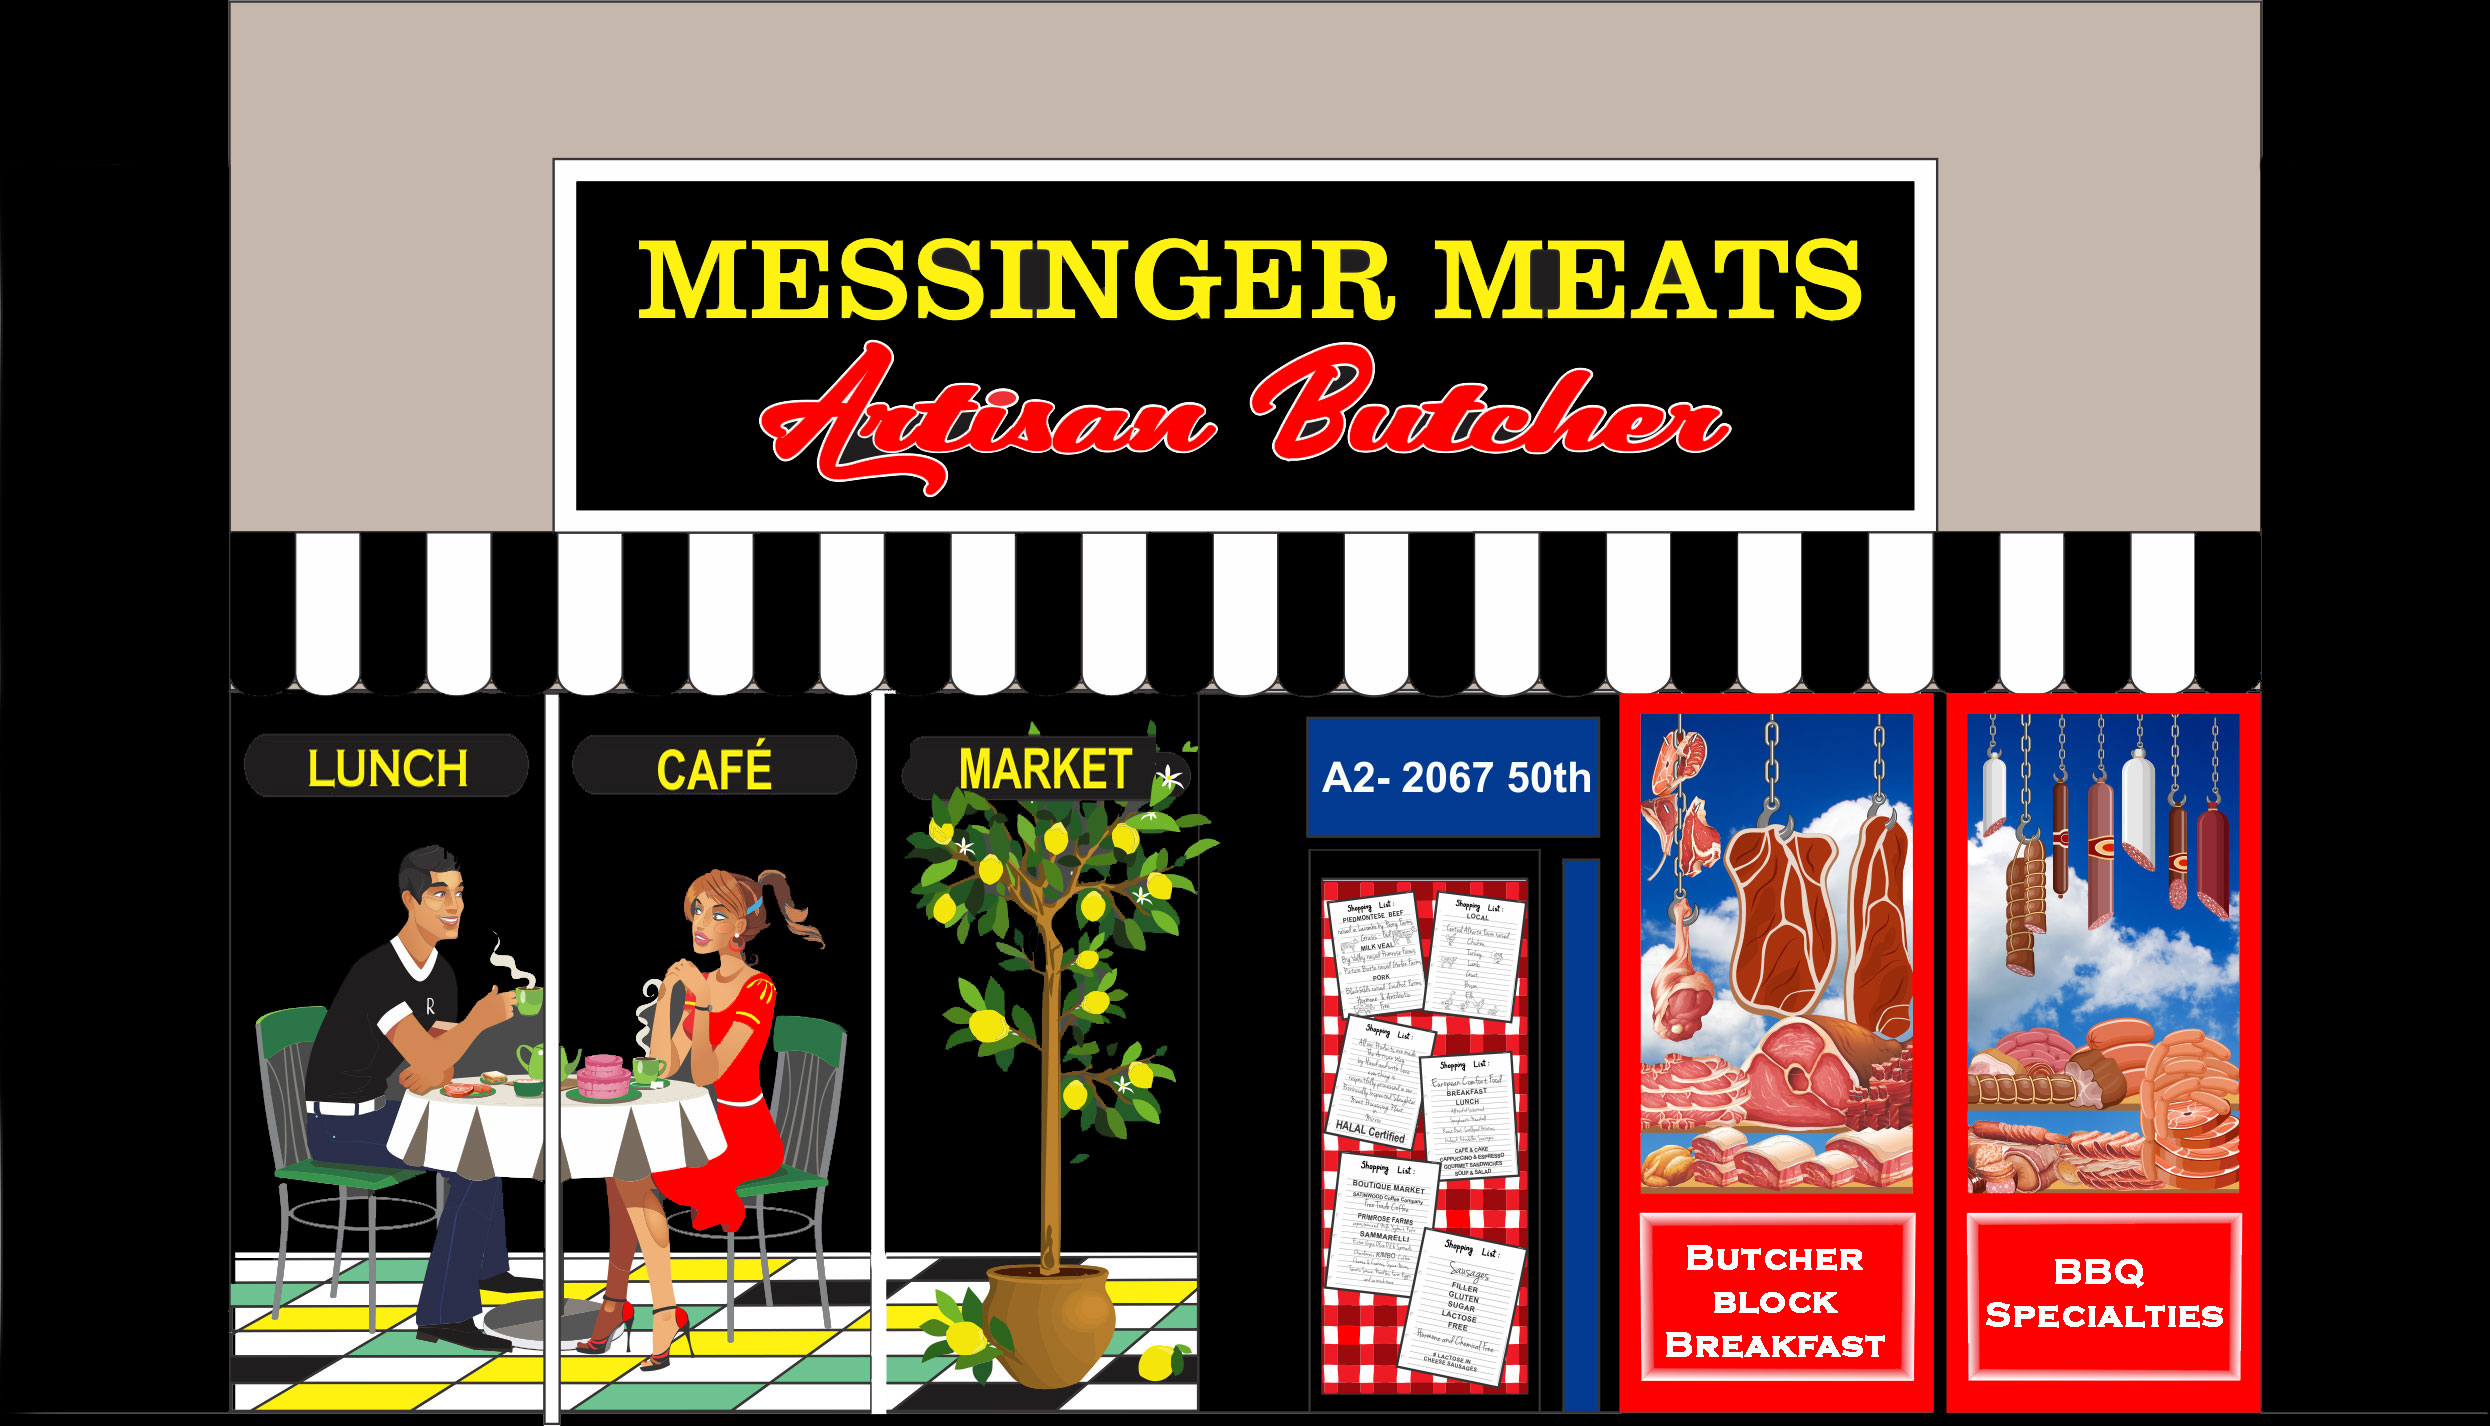 Messinger Meats